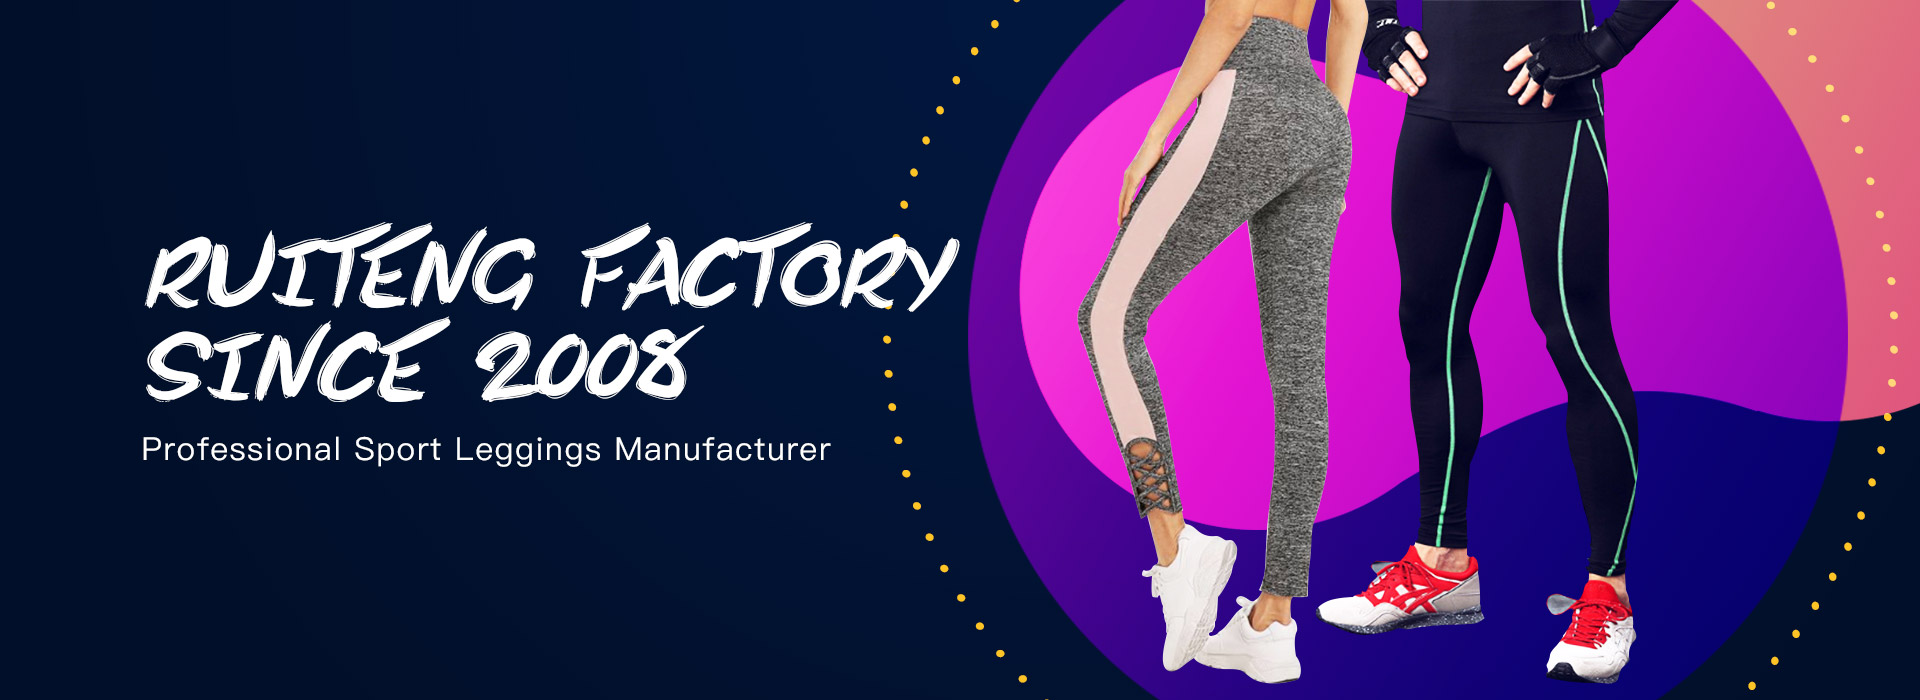 Wholesale Tights Manufacturers Leggings Manufacturers Wholesale Leggings Manufacturers